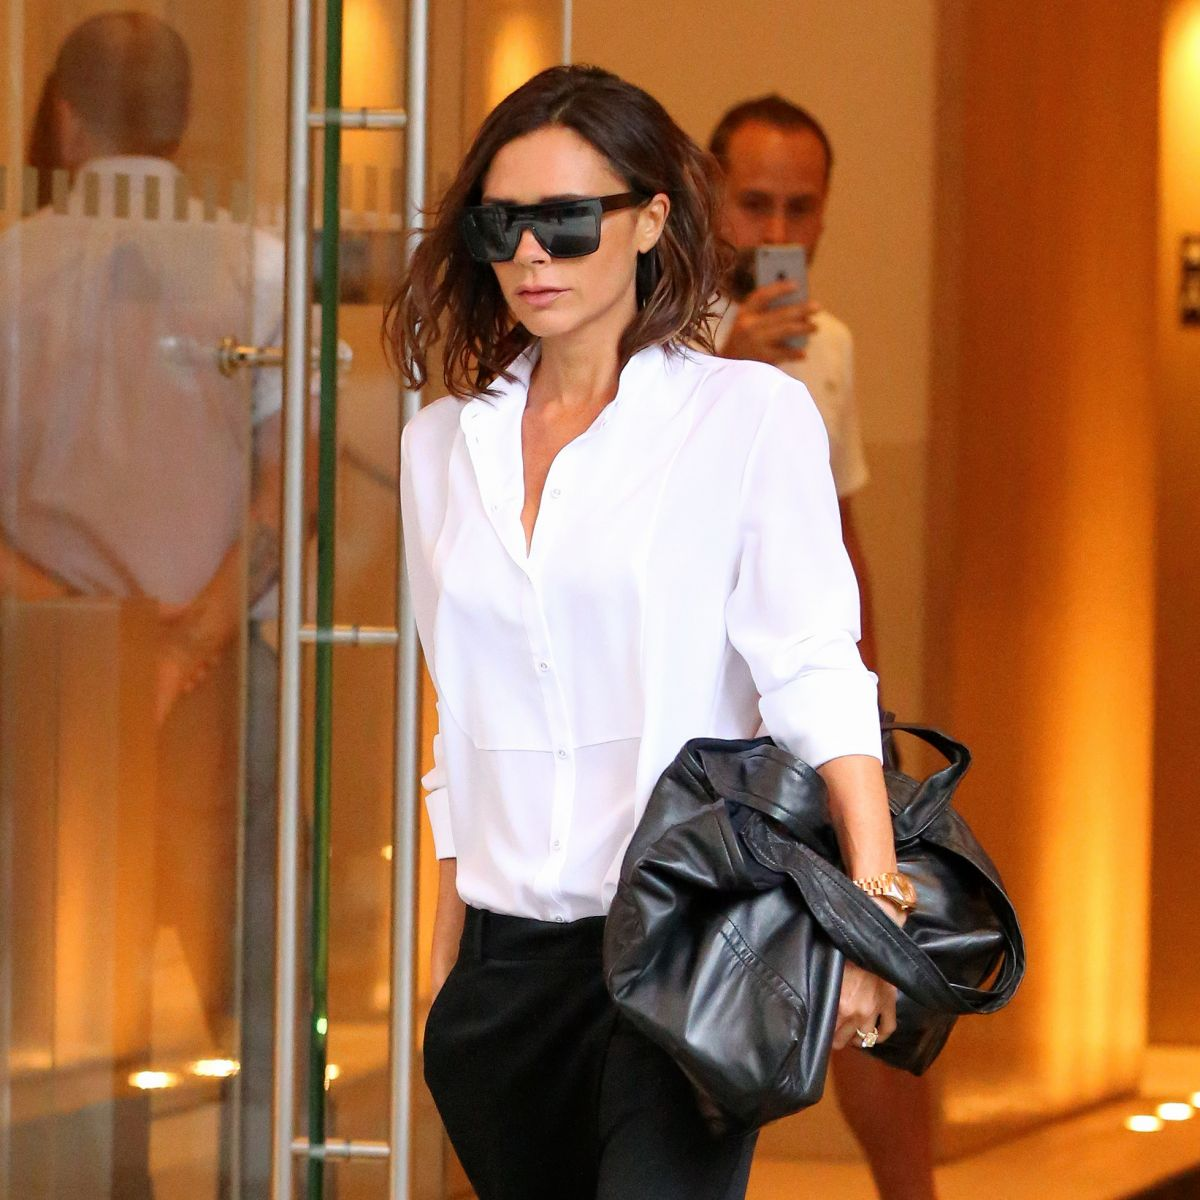 VICTORIA BECKHAM Leaves Her Hotel in New York 09/07/2016